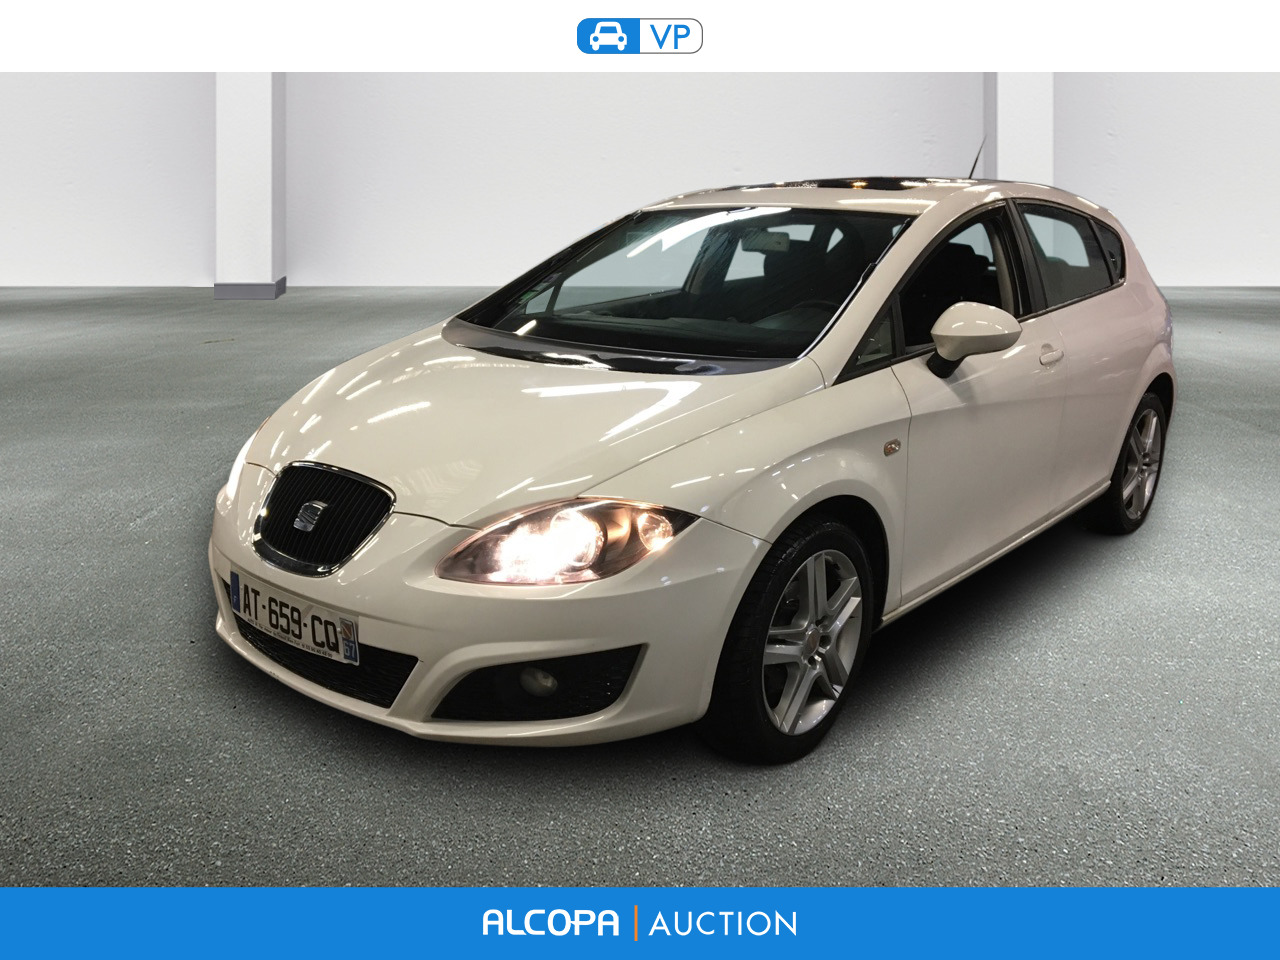 seat leon 02 2009 09 2012 leon 1 6 tdi 105 fap cr alcopa auction. Black Bedroom Furniture Sets. Home Design Ideas